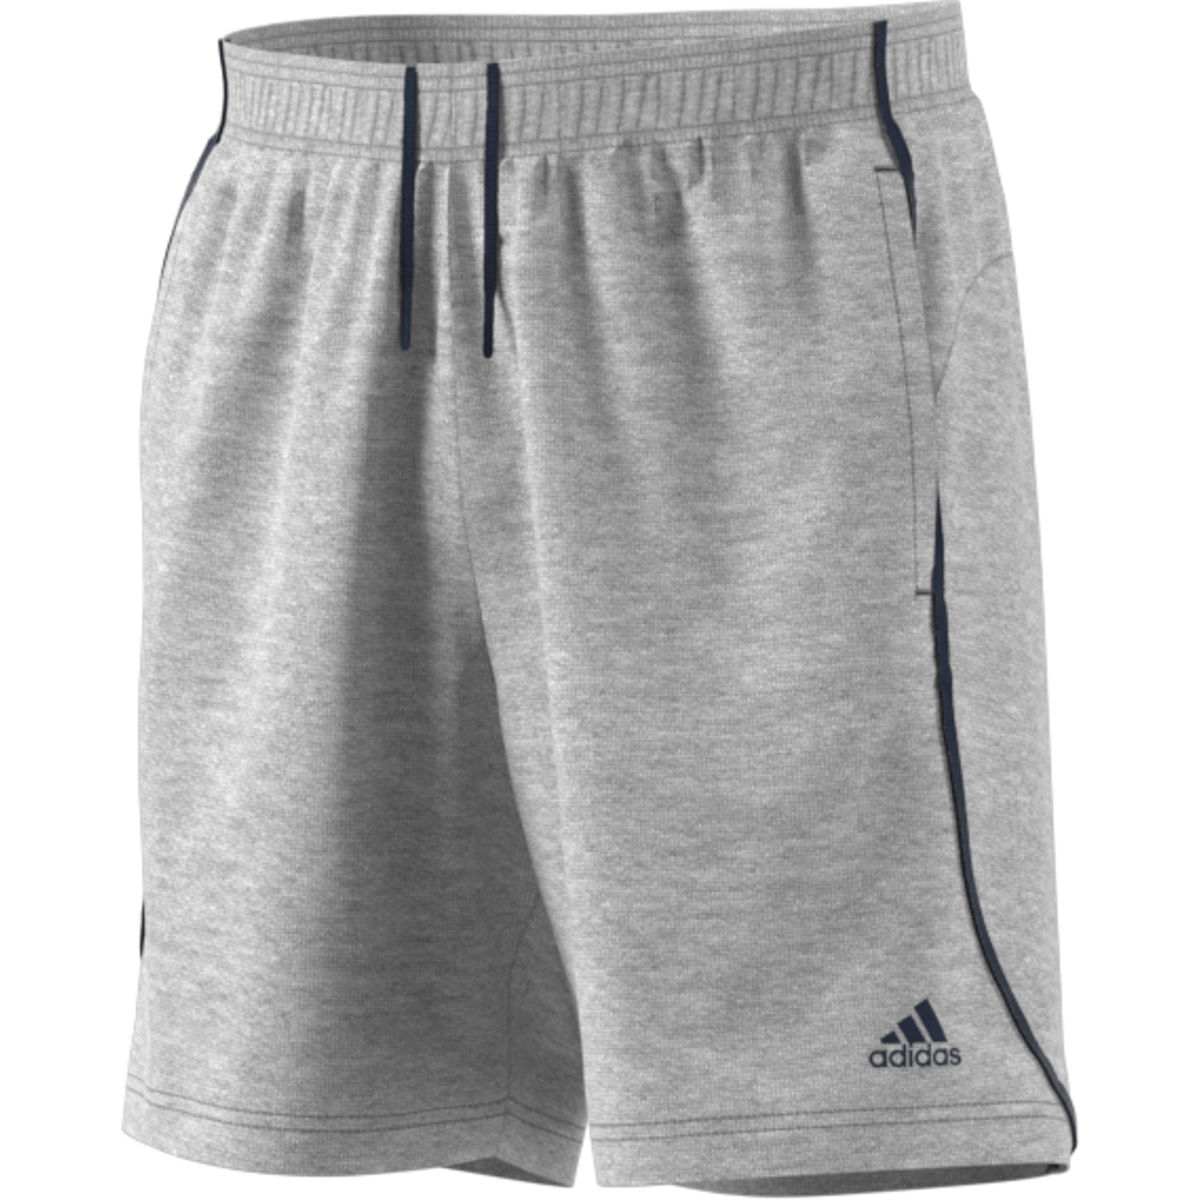 Adidas Essentials 3 Stripes Shorts - Pantalones cortos informales